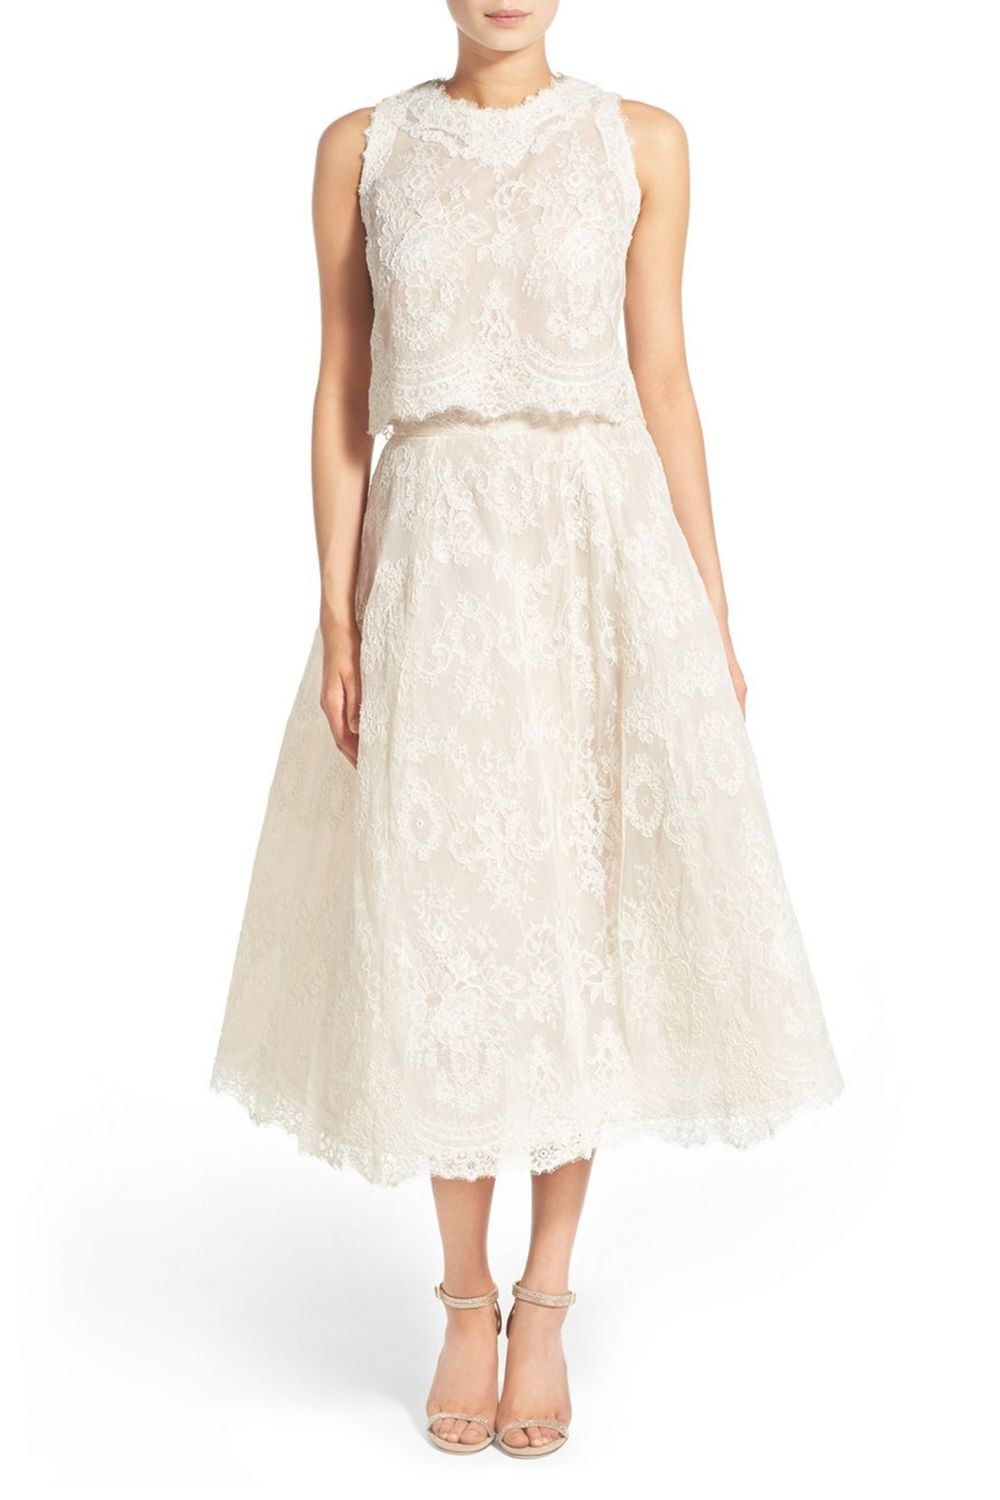 """<p>Everybody likes a two-fer, and everybody likes an Audrey Hepburn reference even more.</p><p>$2,208, <a href=""""http://shop.nordstrom.com/s/embrdrd-lace-crop-top-skirt/4247466?origin=category-personalizedsort&fashioncolor=SILK%20WHITE%2F%20NUDE"""" target=""""_blank"""" data-tracking-id=""""recirc-text-link"""">shop.nordstrom.com</a>.</p>"""